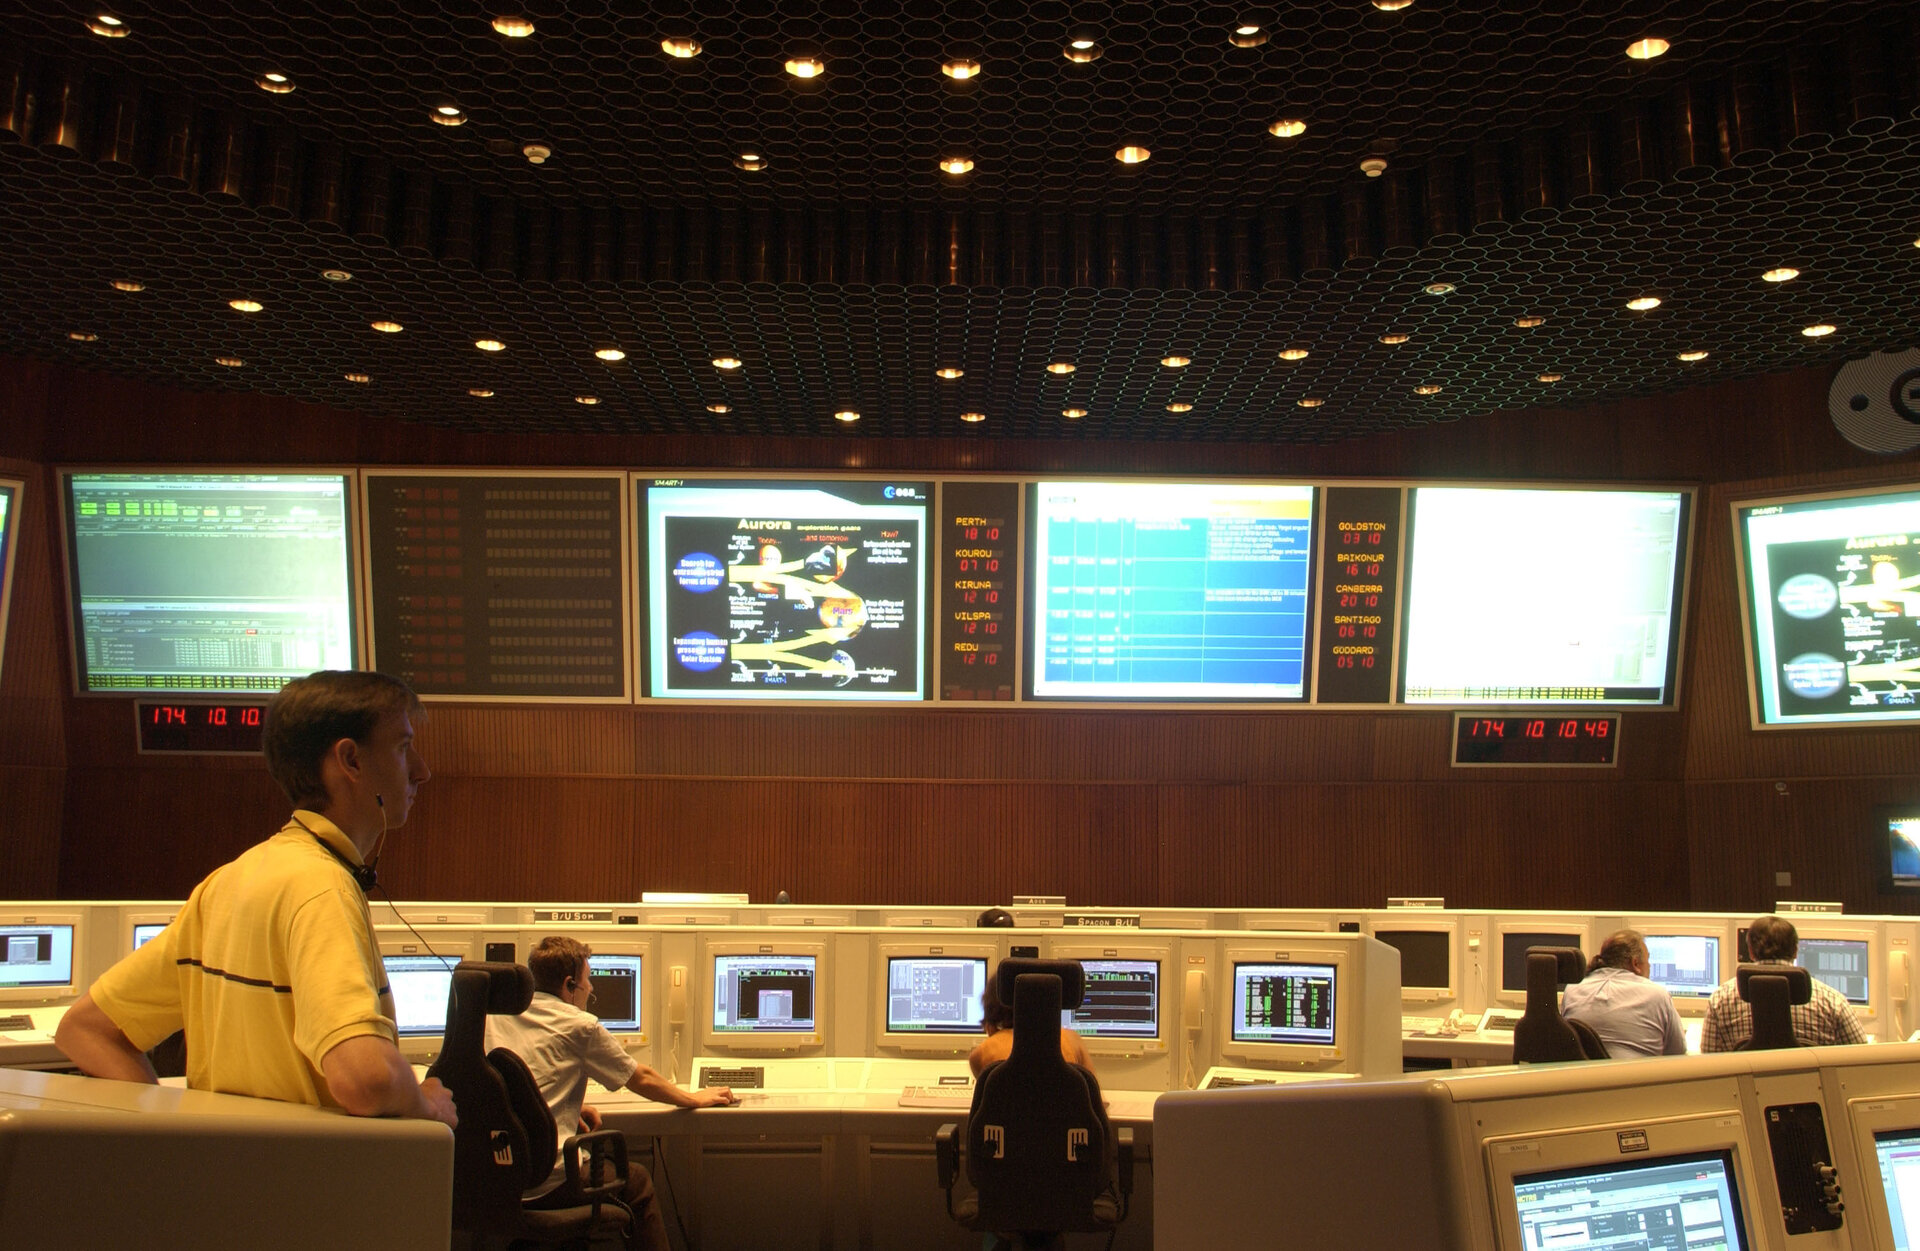 The Main Control room at ESOC